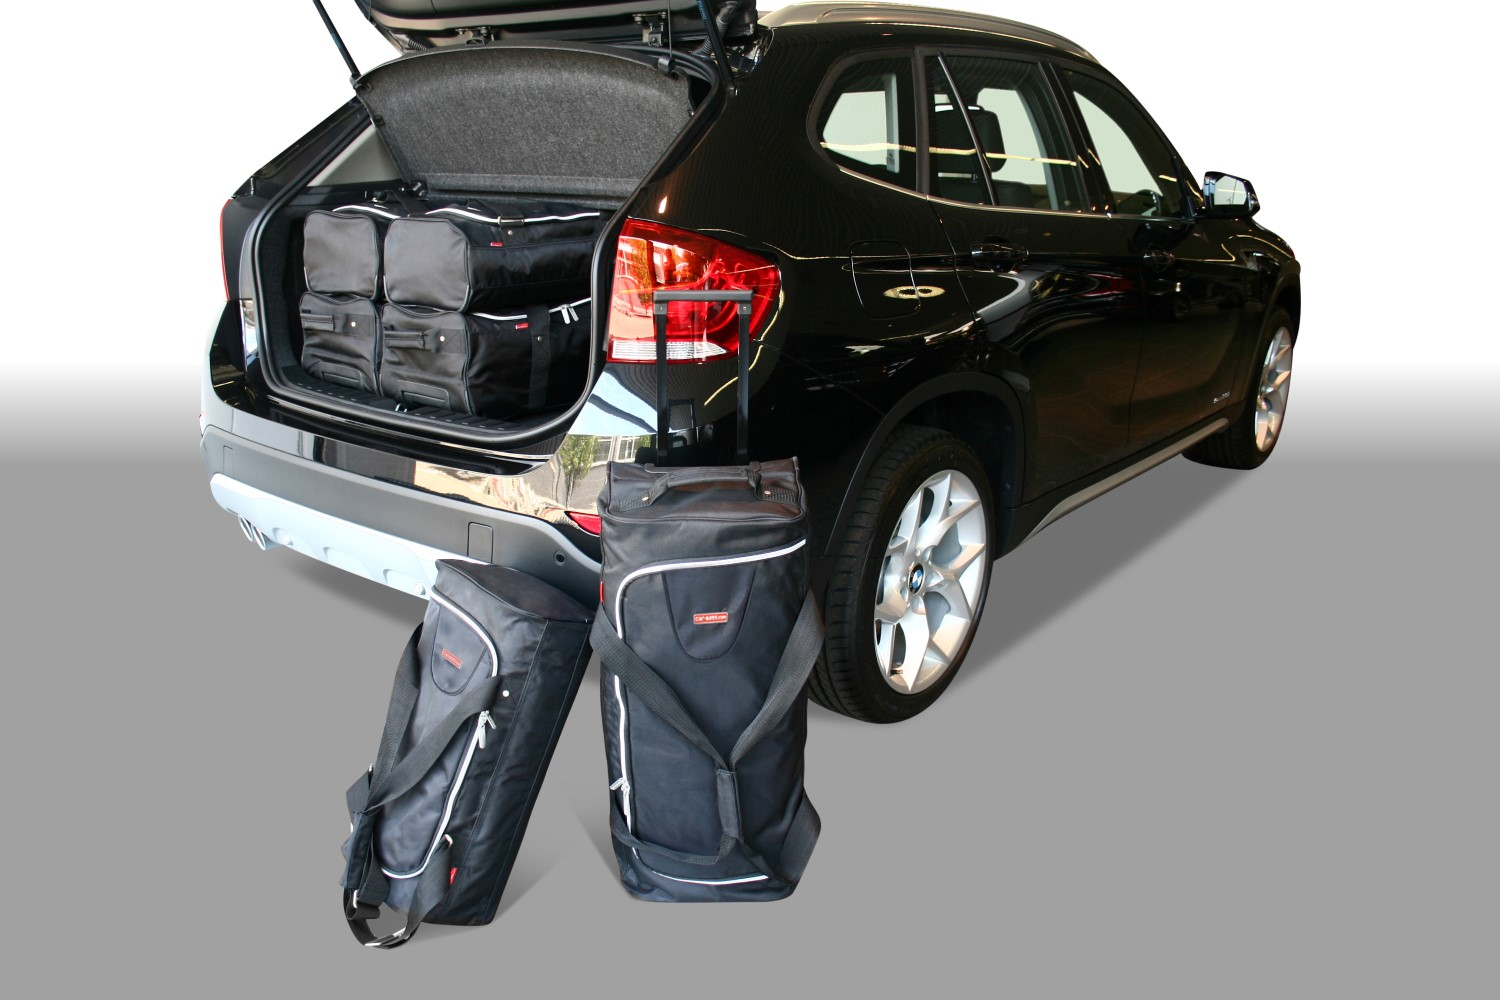 x1 bmw x1 e84 2010 2015 car bags reisetaschen. Black Bedroom Furniture Sets. Home Design Ideas